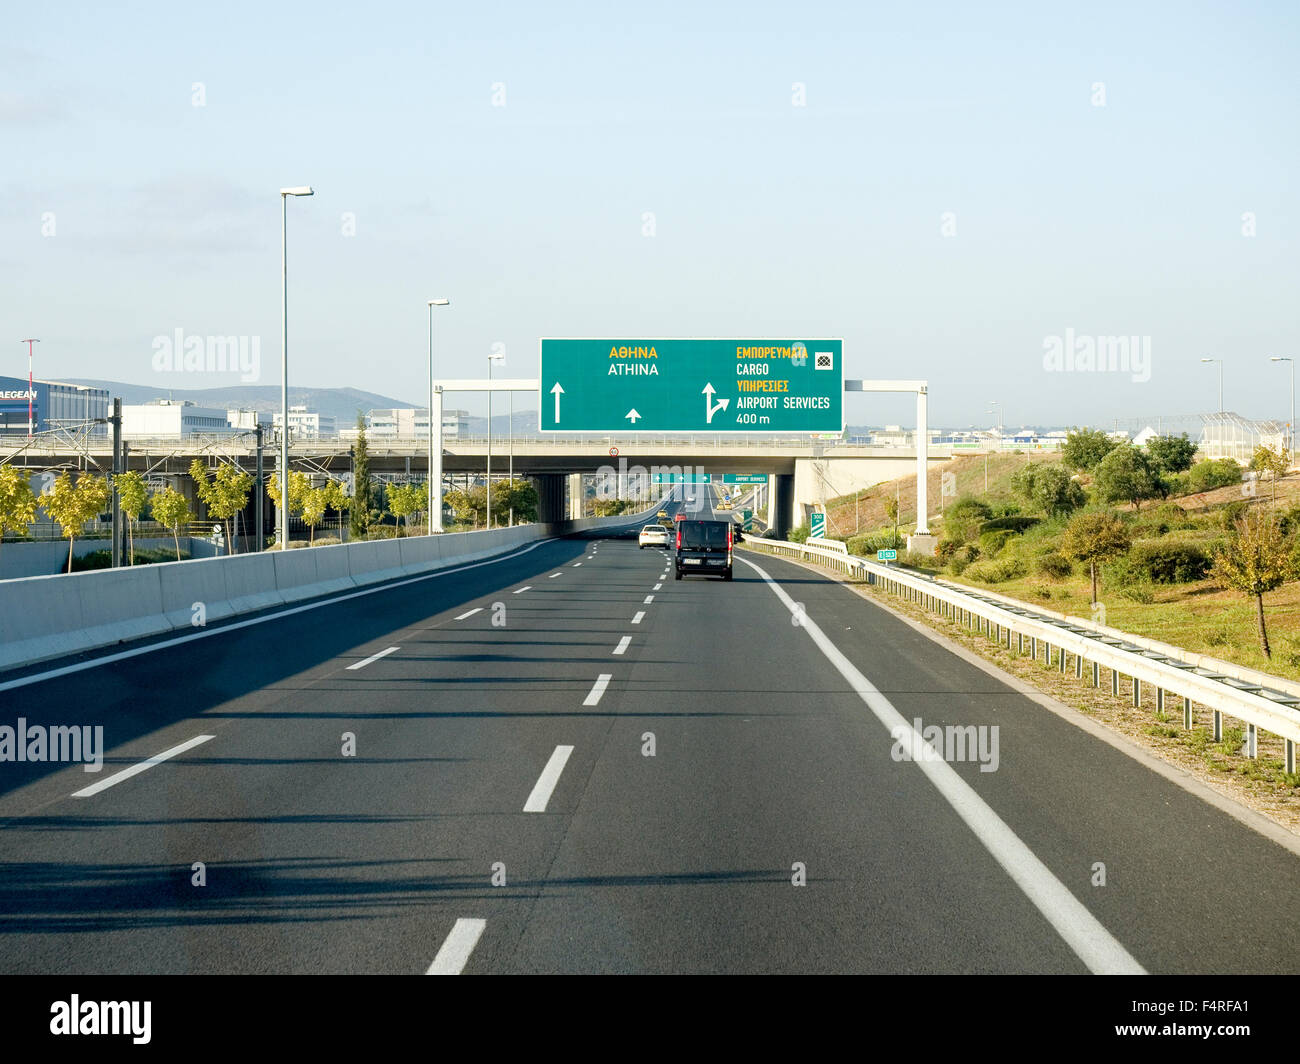 greek road signs stockfotos greek road signs bilder alamy. Black Bedroom Furniture Sets. Home Design Ideas